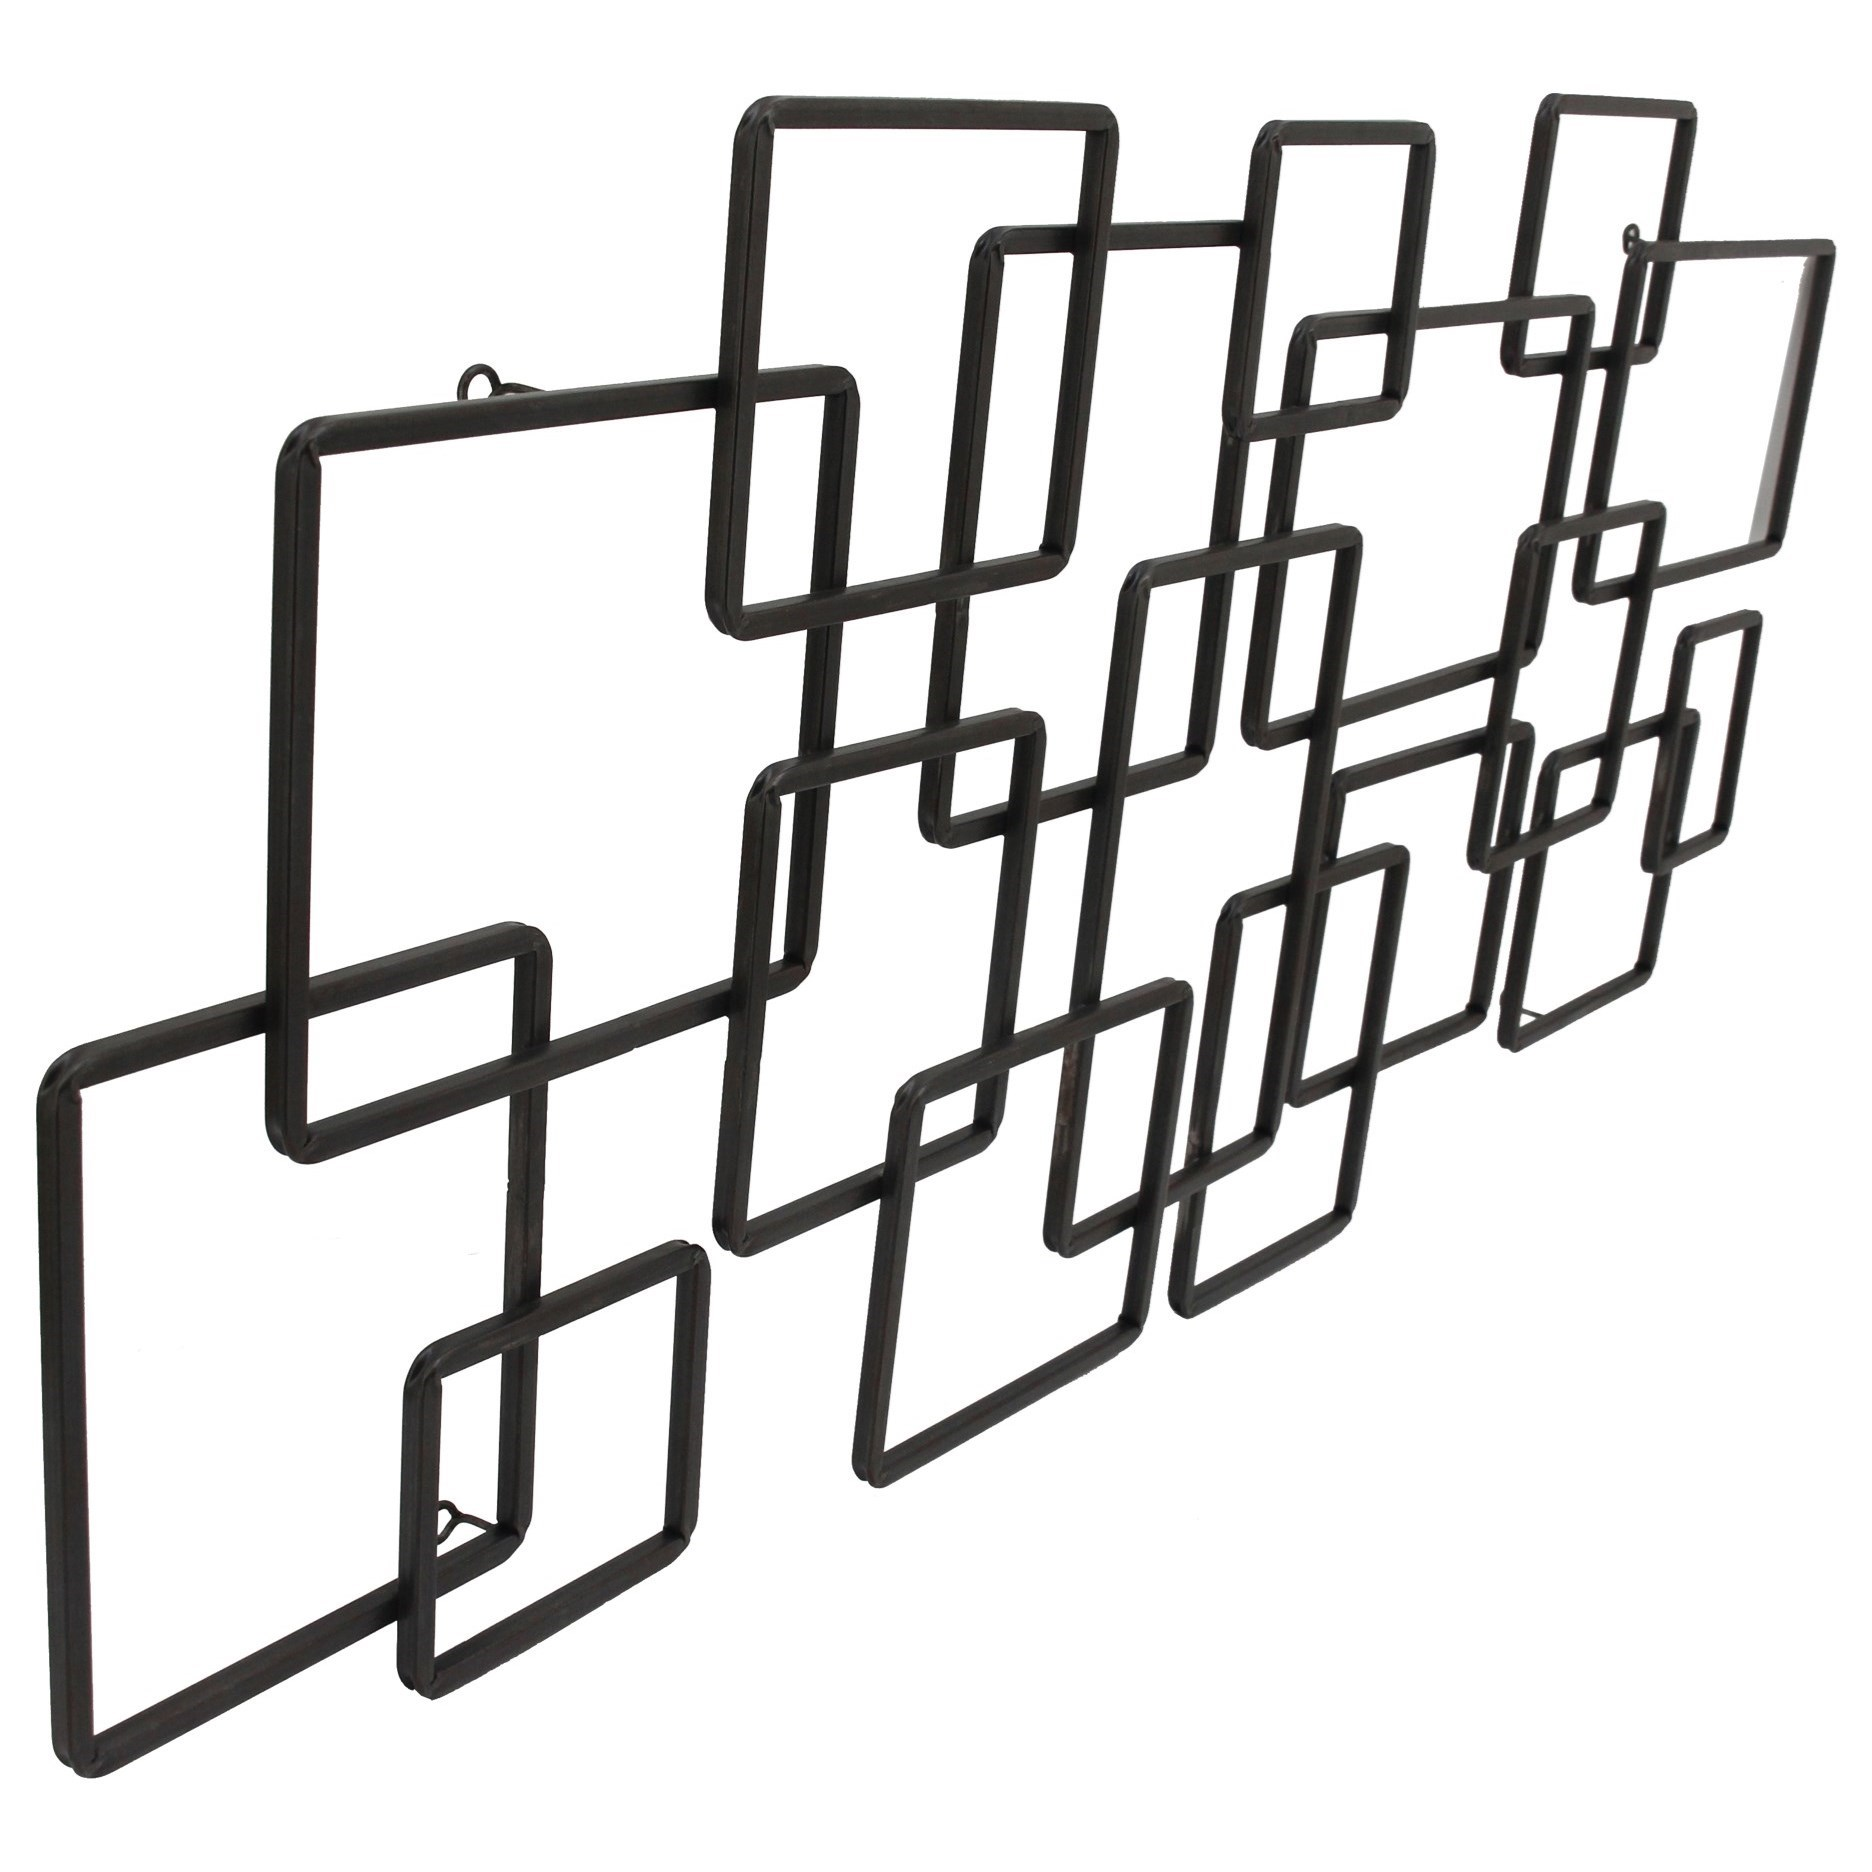 Moe S Home Collection Wall Decor Steel Squares Wall Decor